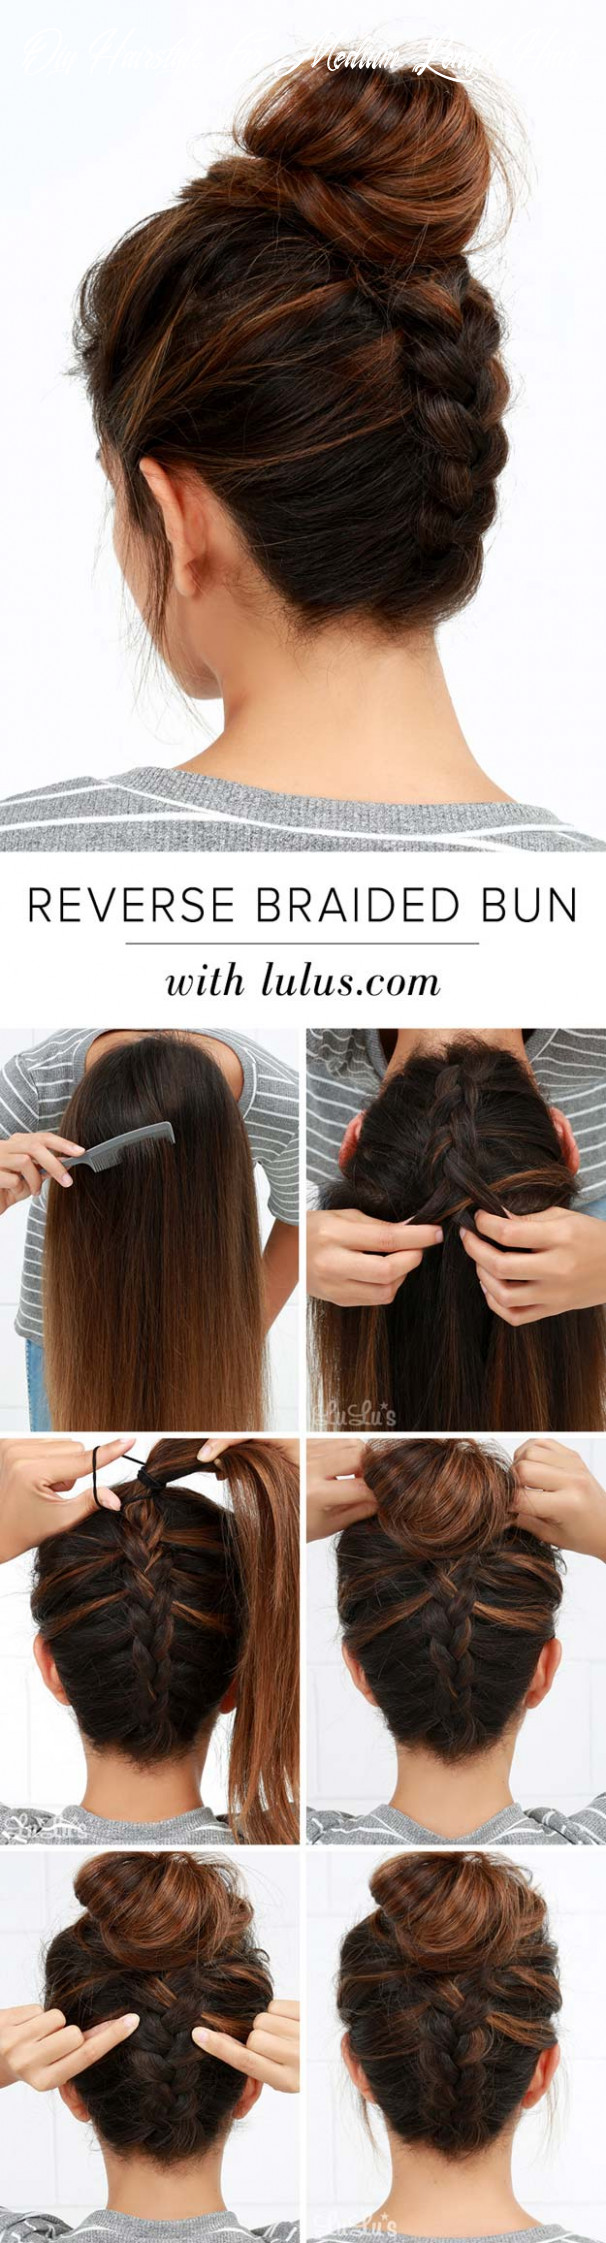 8 diy cool easy hairstyles that real people can actually do at home! diy hairstyle for medium length hair